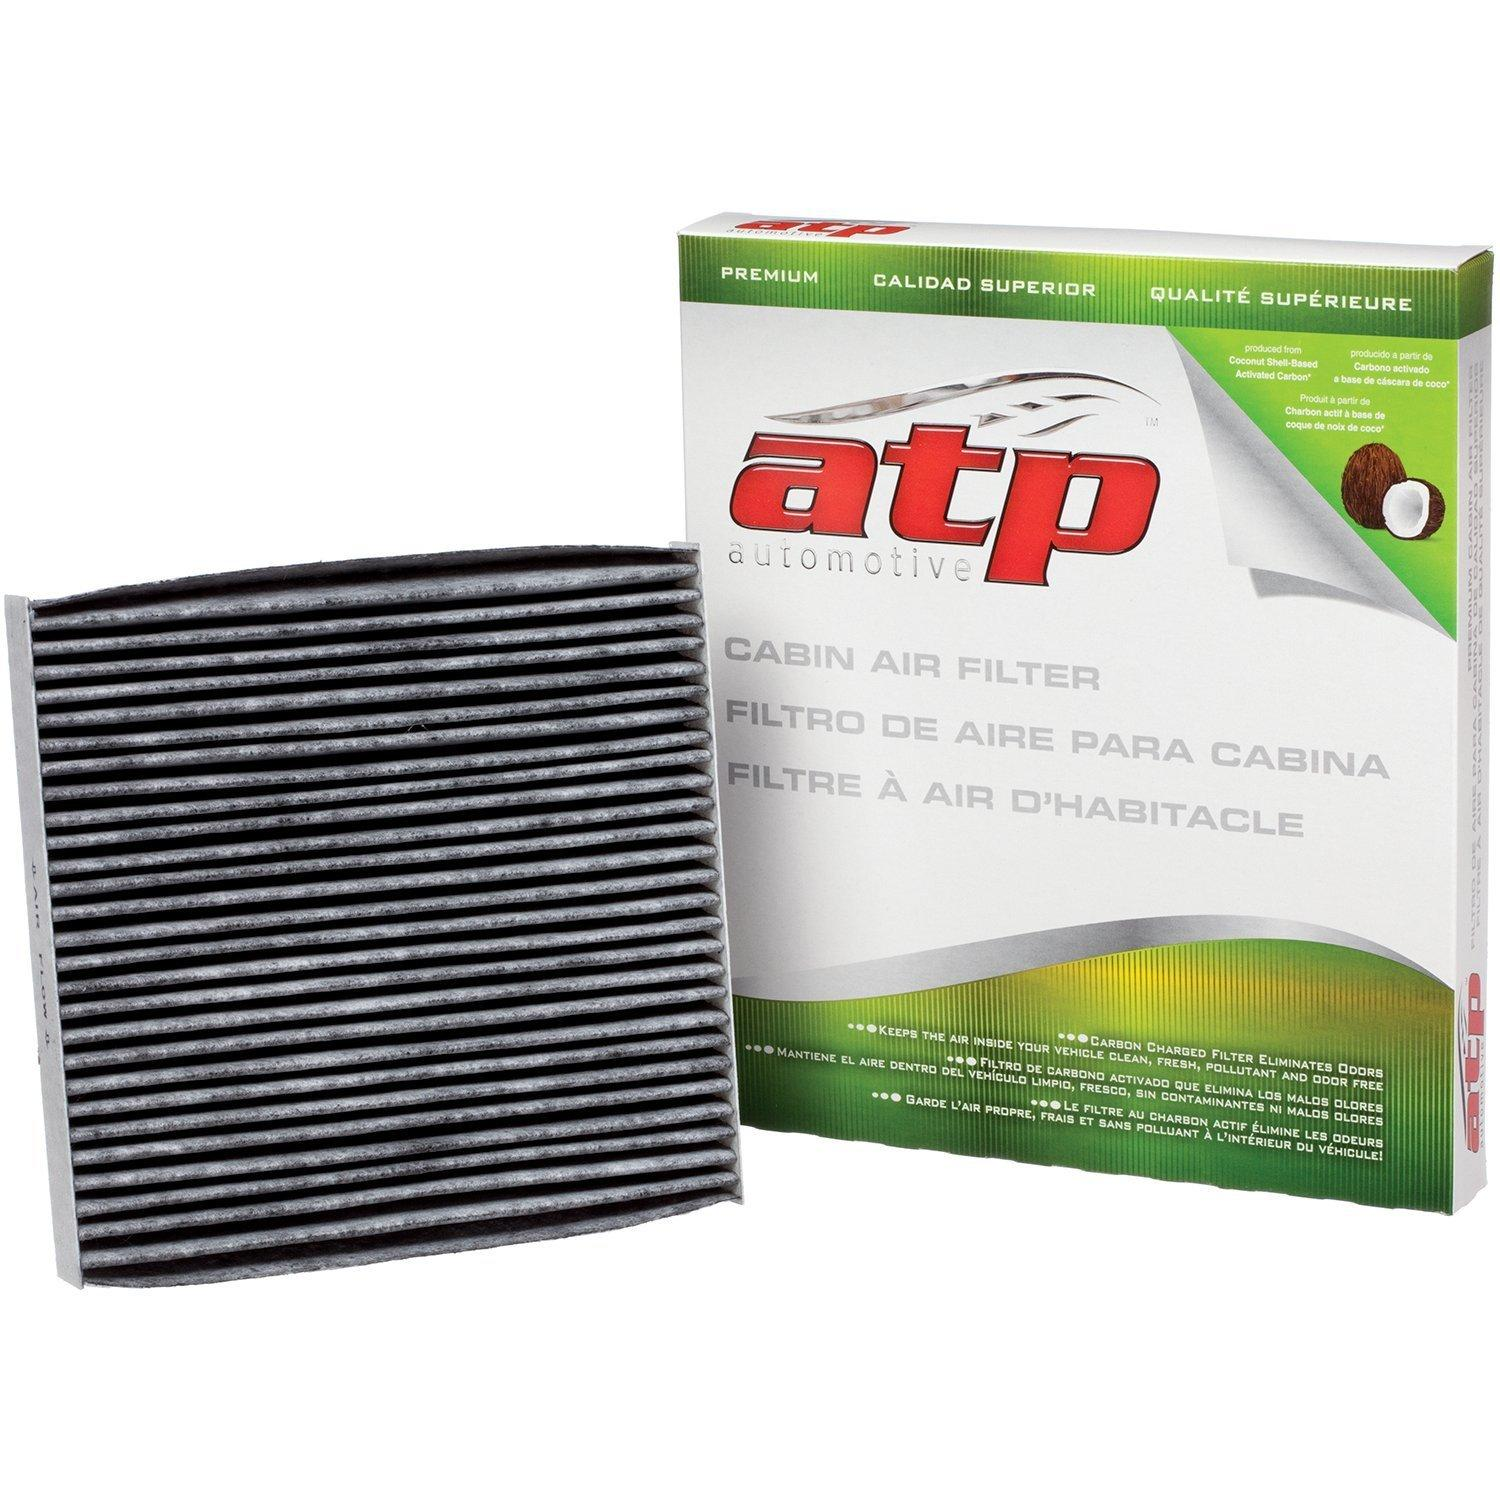 Extra $2 Off + Extra 15% Off Select ATP Carbon Activated Premium Cabin Air Filters @ Amazon.com